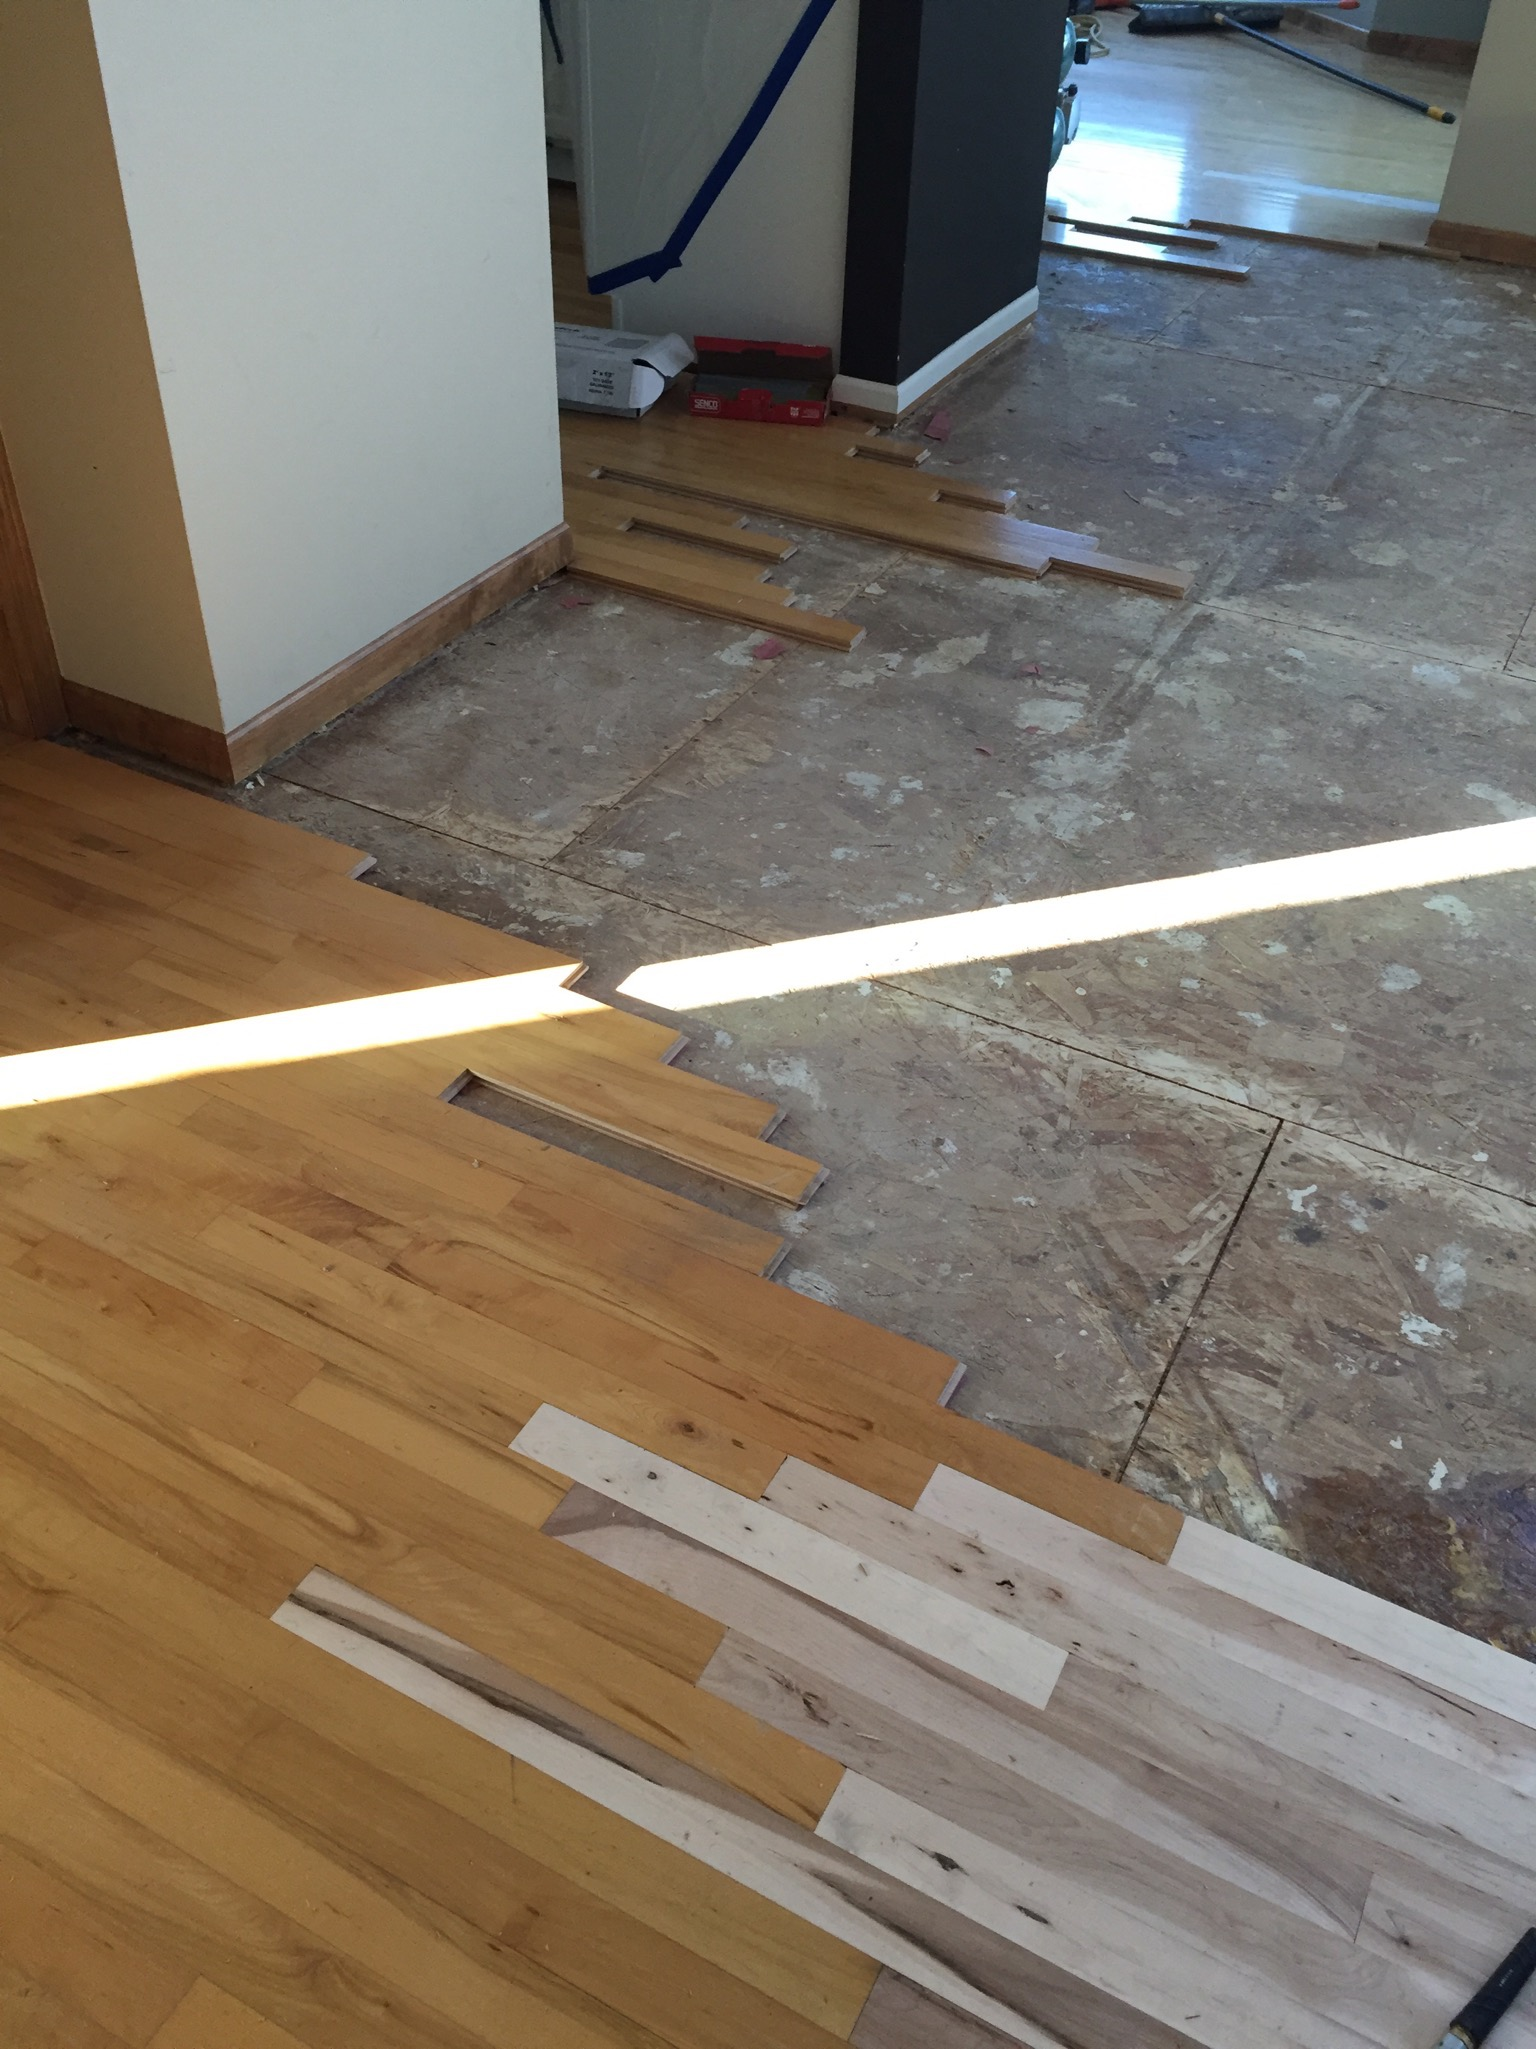 refinishing best vancouver hardwood flooring and services floor header company installation